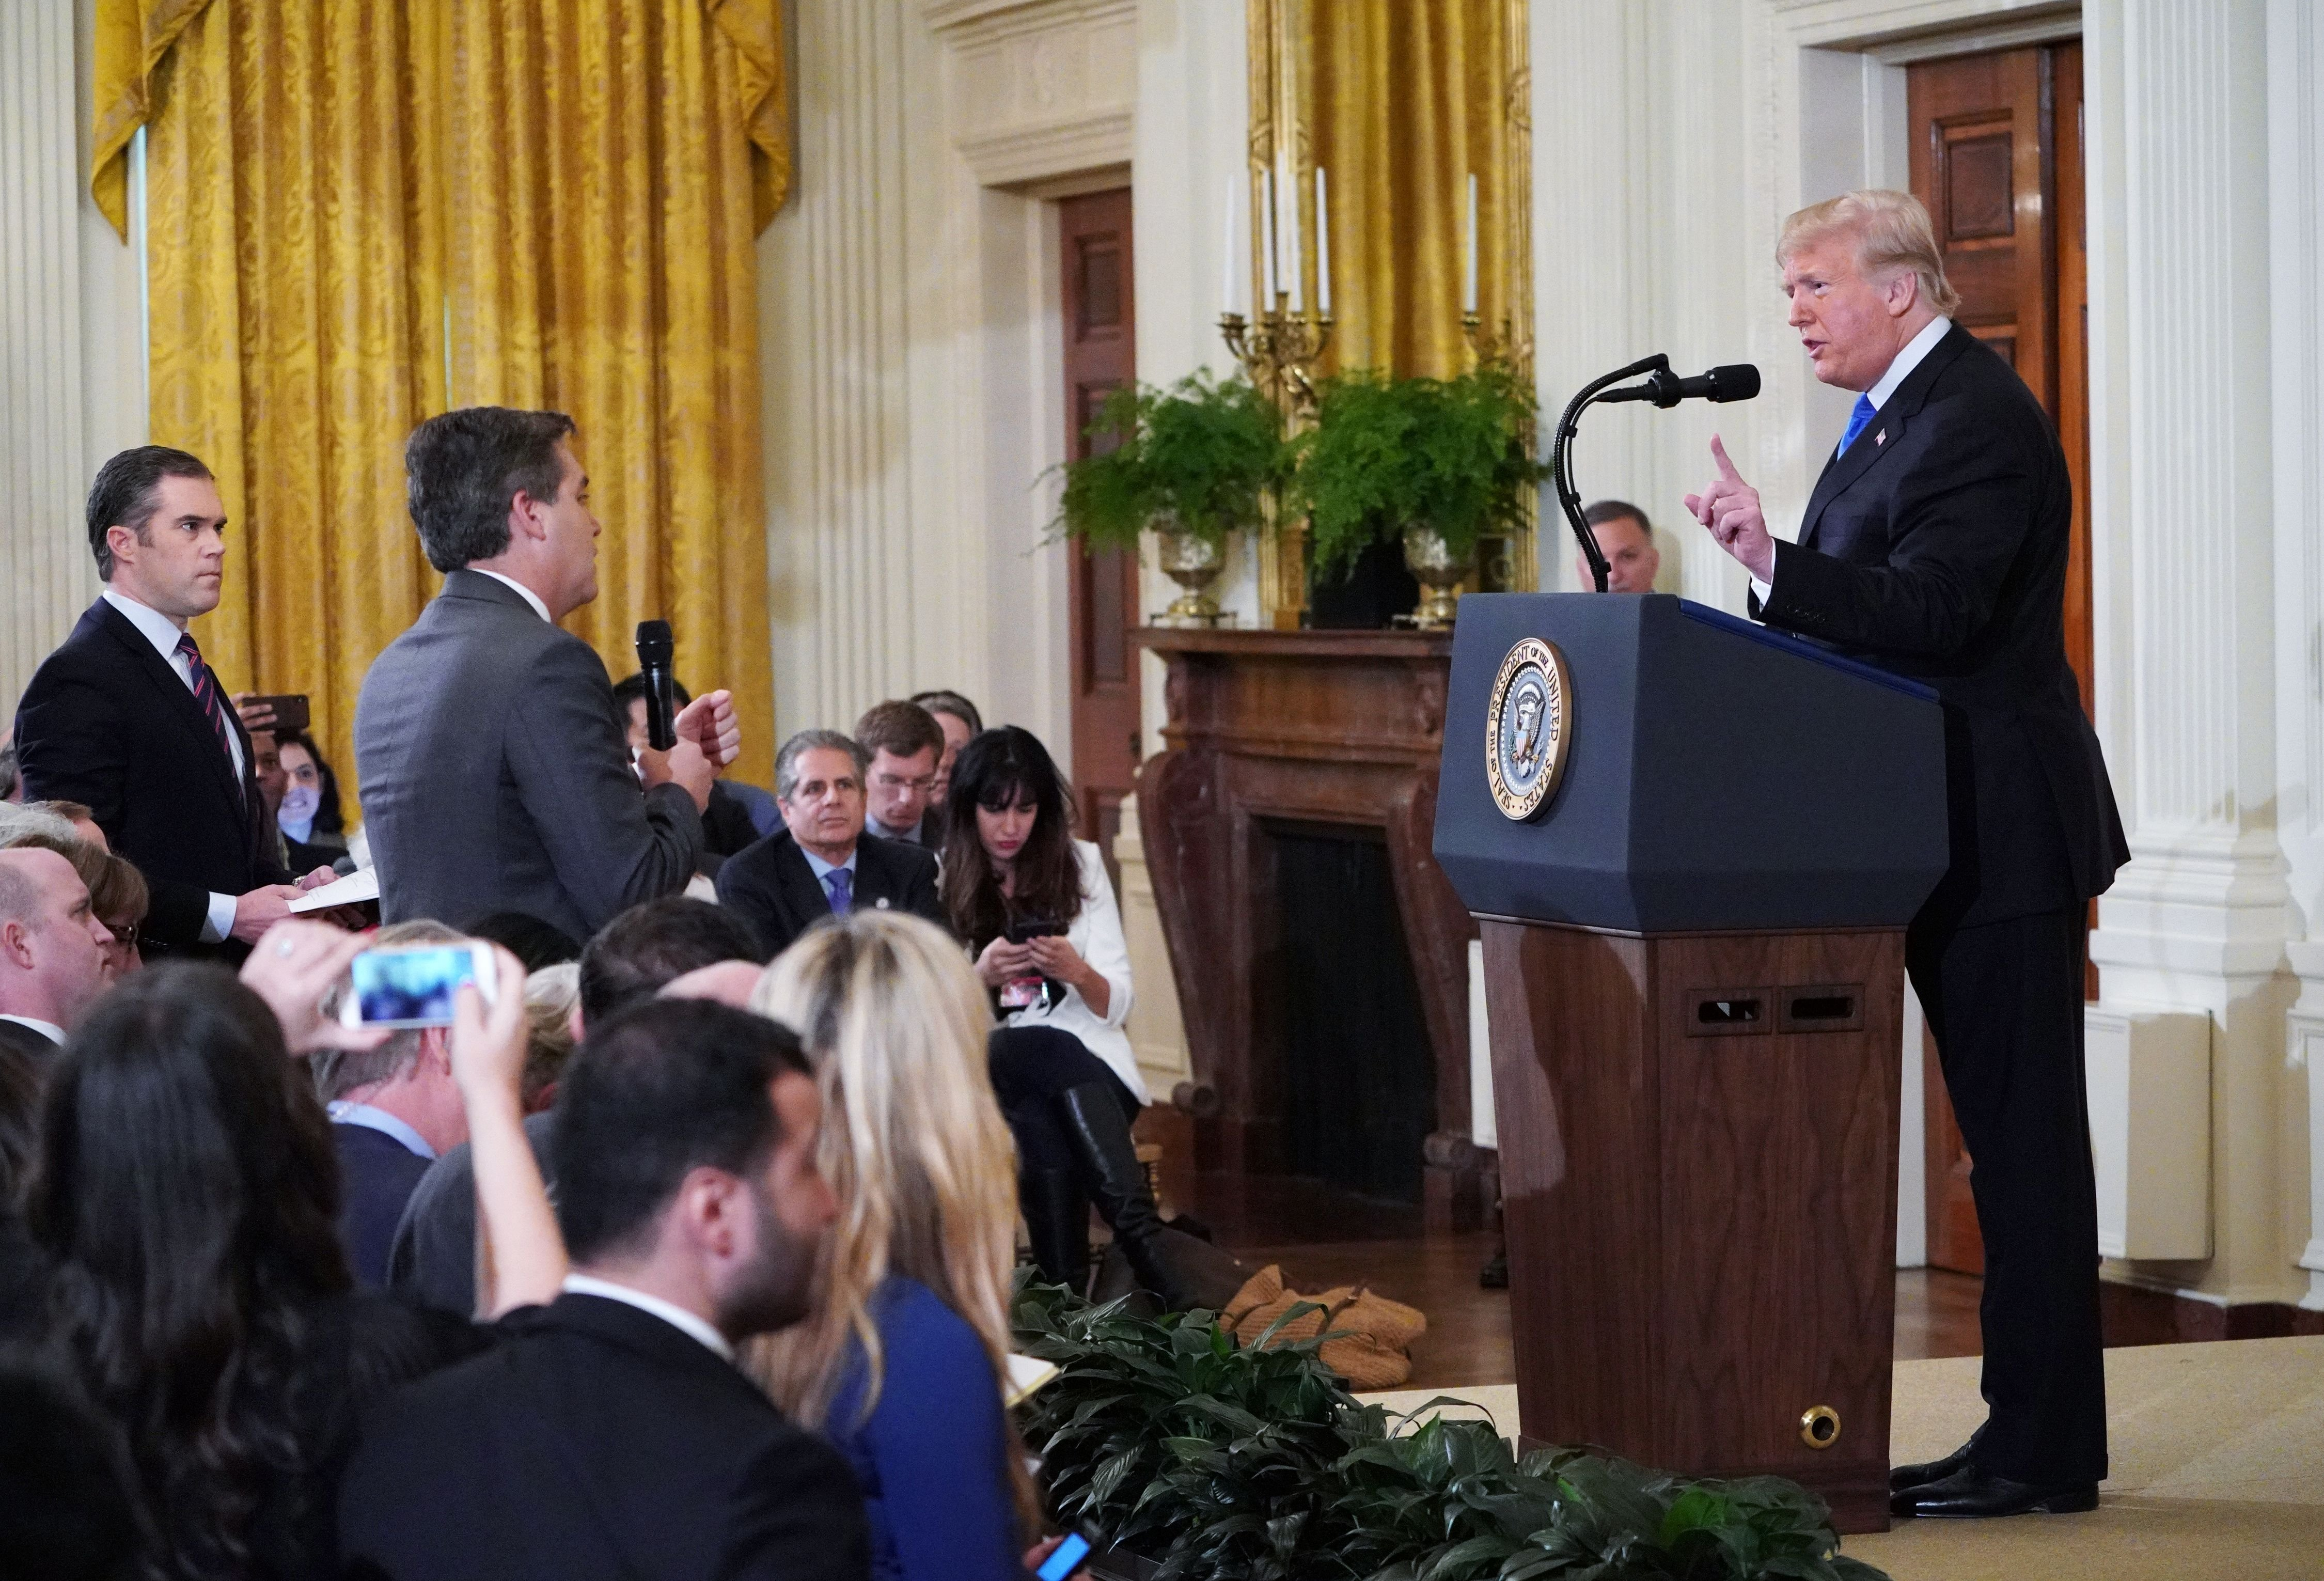 TOPSHOT - US President Donald Trump (R) gets into a heated exchange with CNN chief White House correspondent Jim Acosta (C) as NBC correspondent Peter Alexander (L) looks on during a post-election press conference in the East Room of the White House in Washington, DC on November 7, 2018. (Photo by MANDEL NGAN / AFP) (Photo credit should read MANDEL NGAN/AFP/Getty Images)